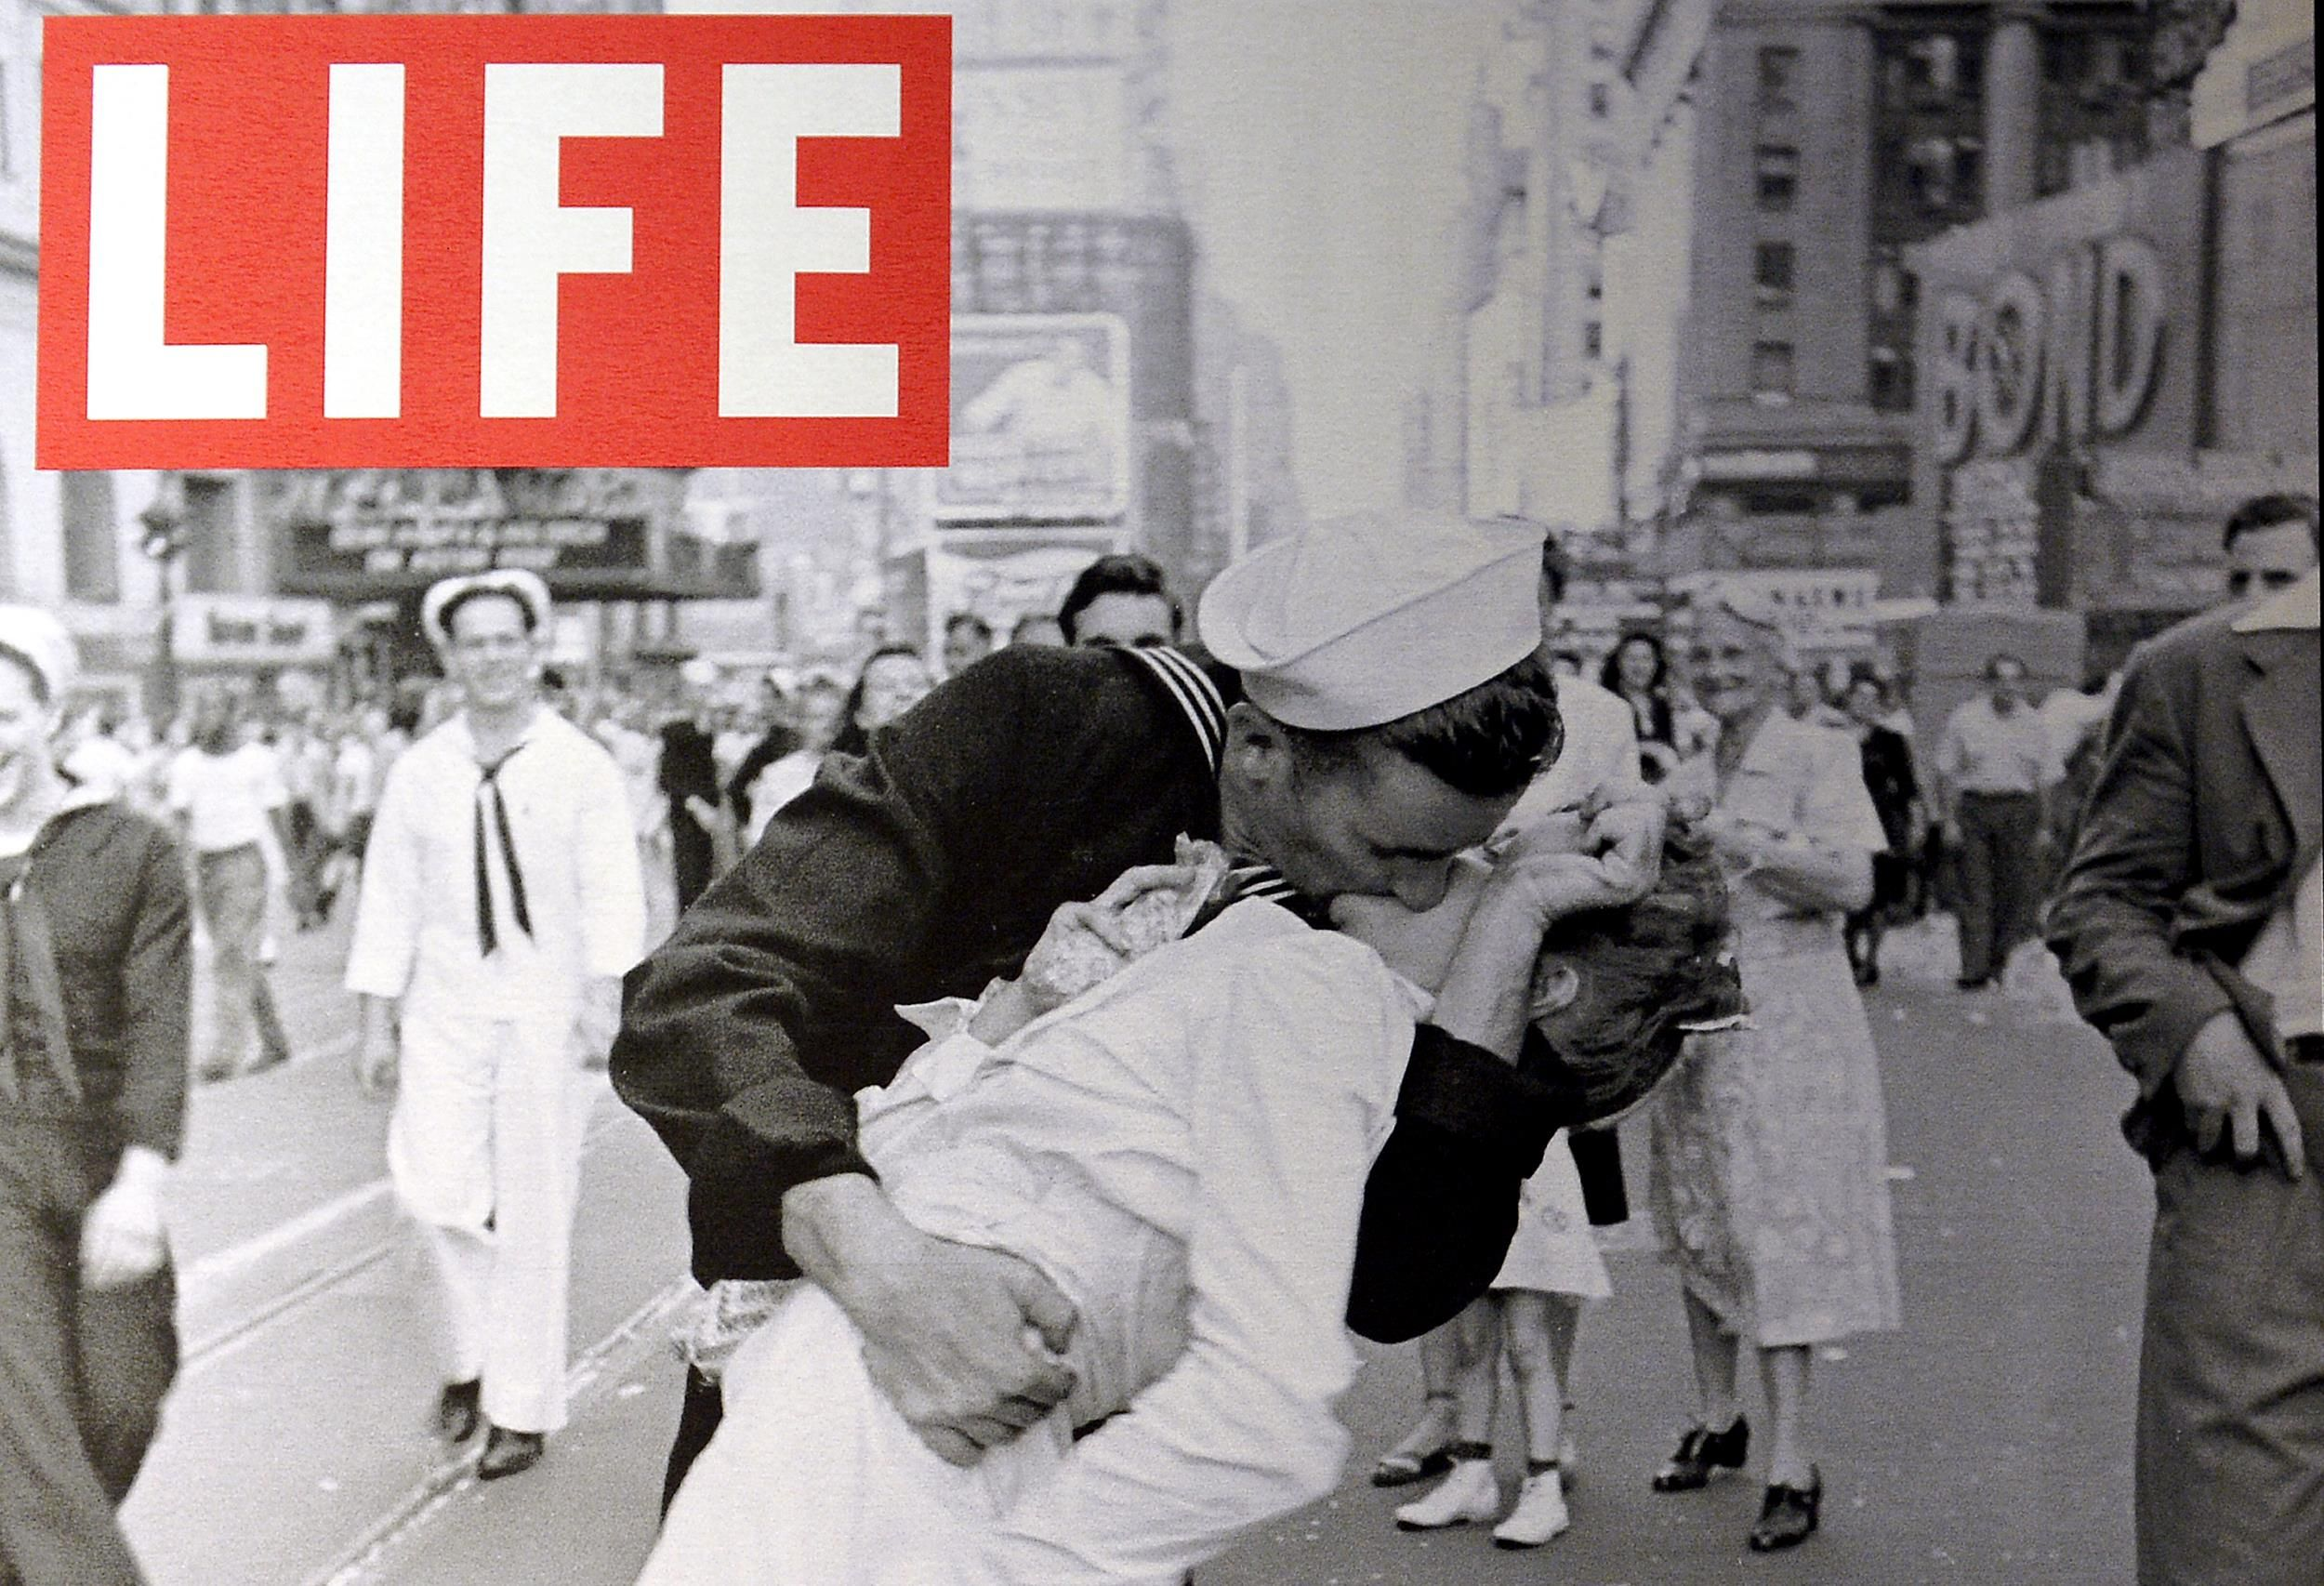 Vet Who Says He Was Kissing Sailor In Famous Photo Dies Iconic PhotosFamous PhotosAll TimeLife